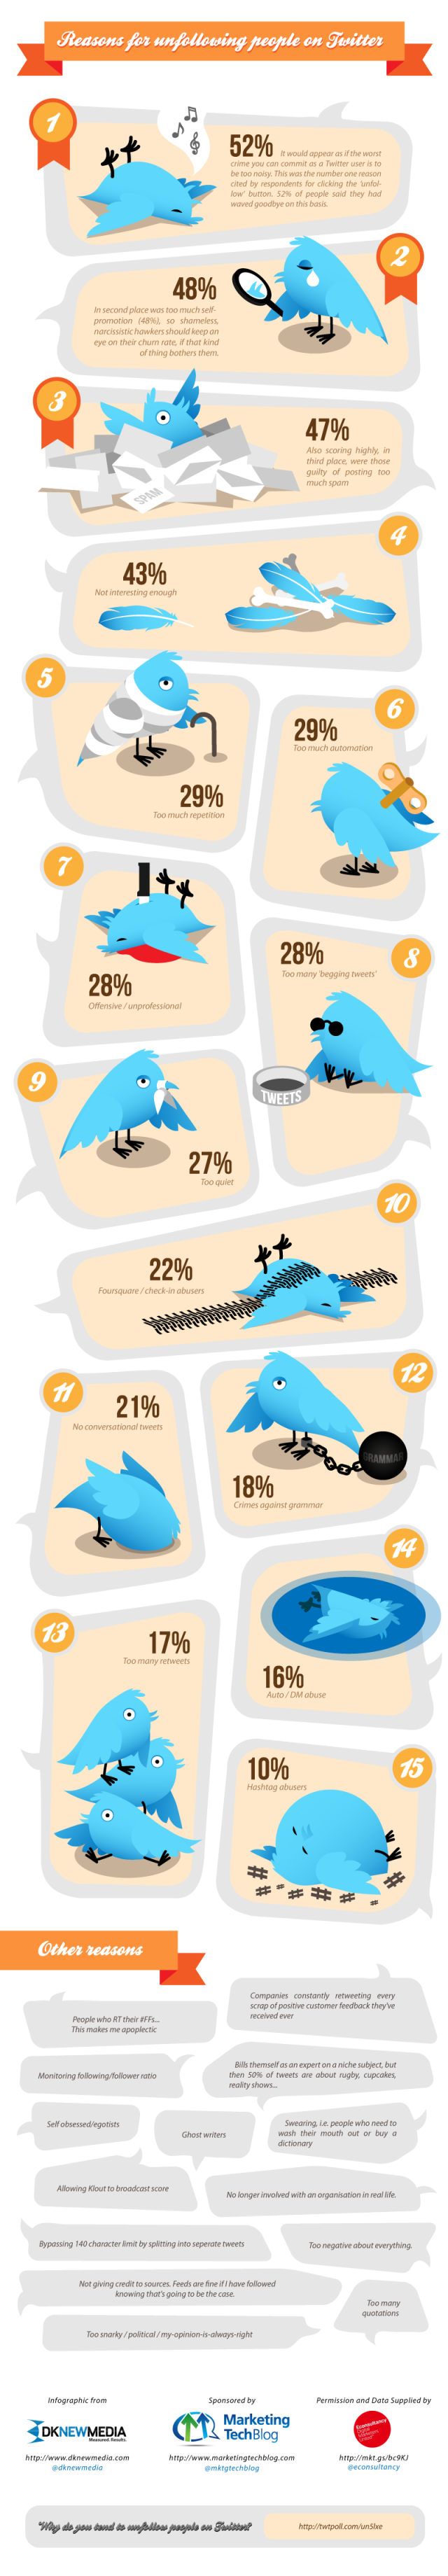 15 Reasons Why You've Just Been Unfollowed On Twitter [INFOGRAPHIC]